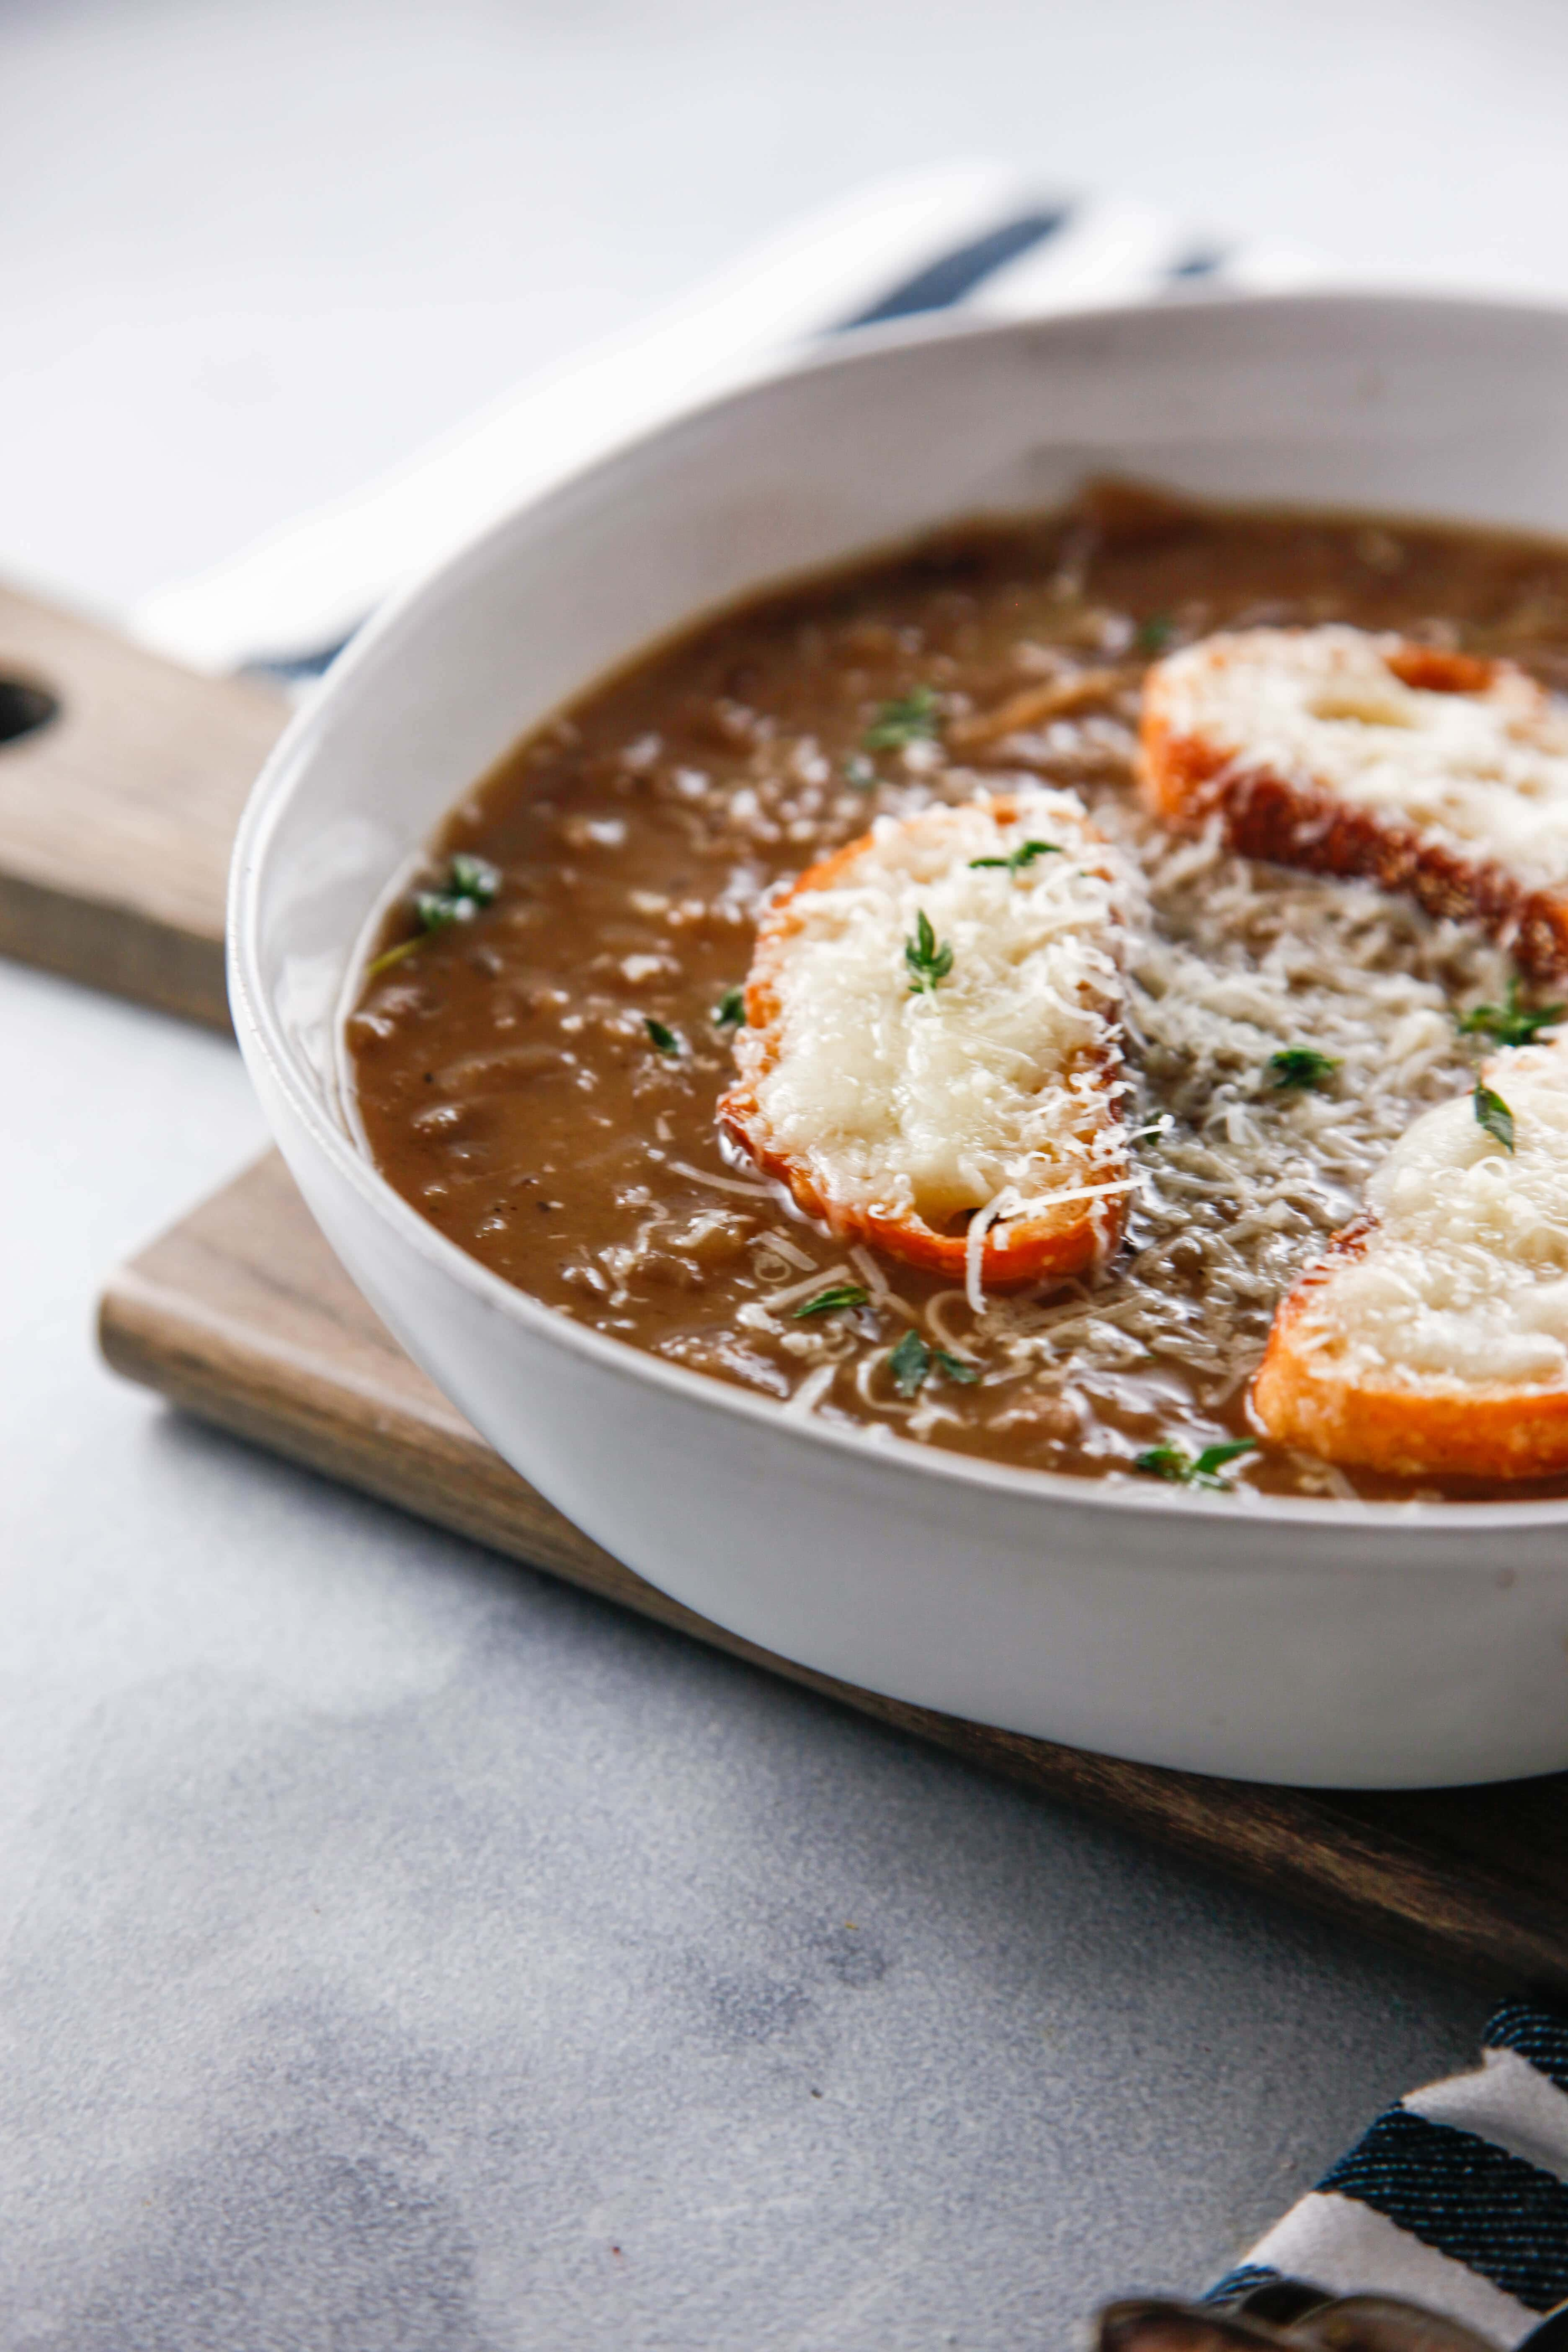 Classic Bistro French Onion Soup in a white bowl.